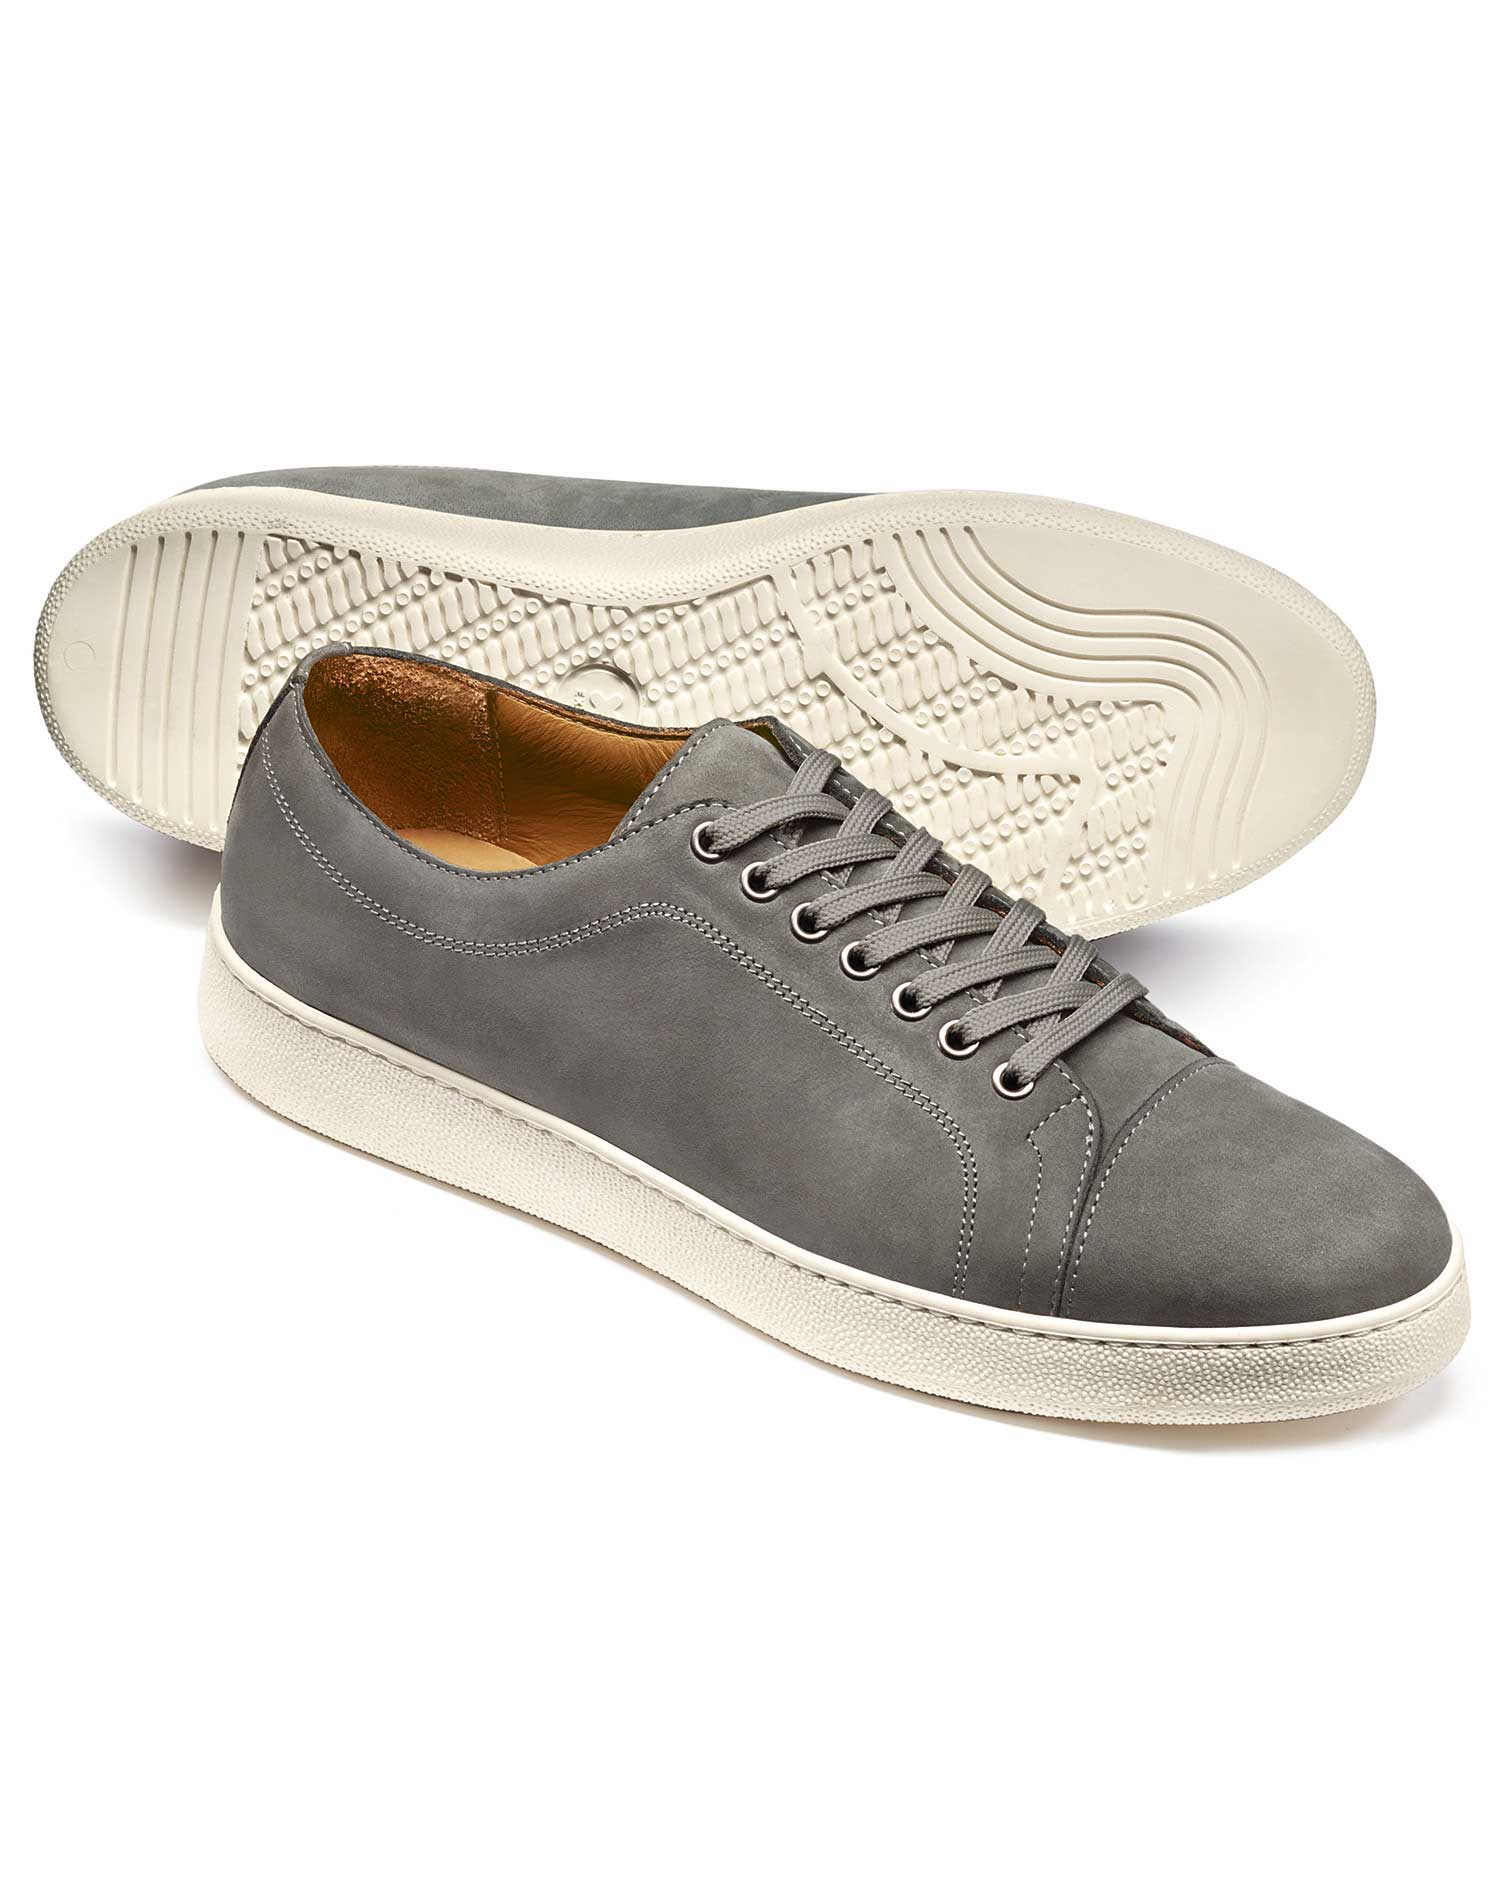 Light Grey Nubuck Leather Toe Cap Trainers Size 8 R by Charles Tyrwhitt